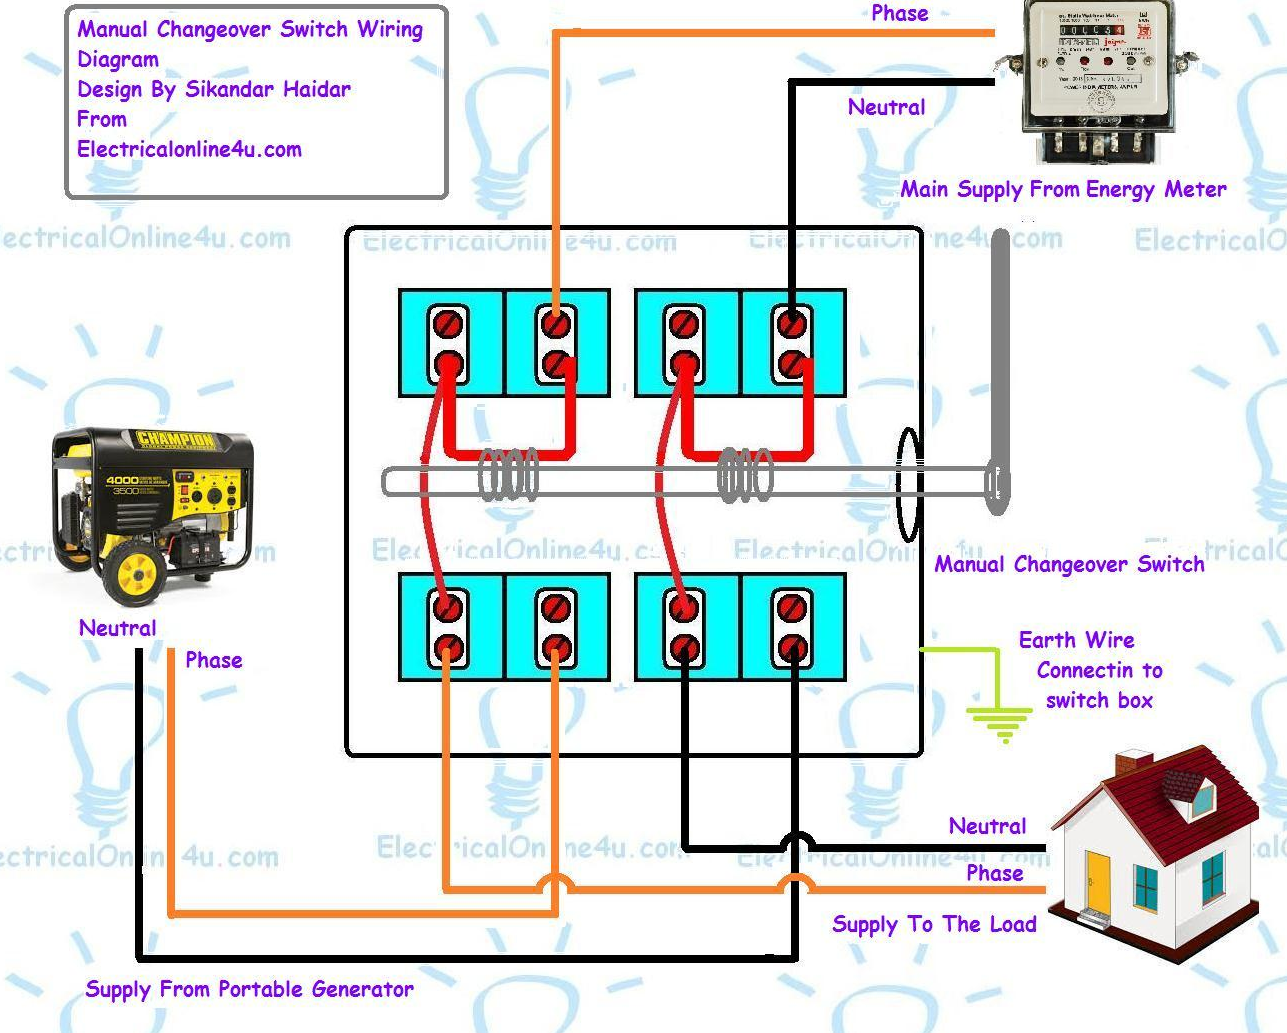 manual%2Bchangeover%2Bswitch%2Bwiring%2Bdiagram manual changeover switch wiring diagram for portable generator generator wiring diagrams at alyssarenee.co